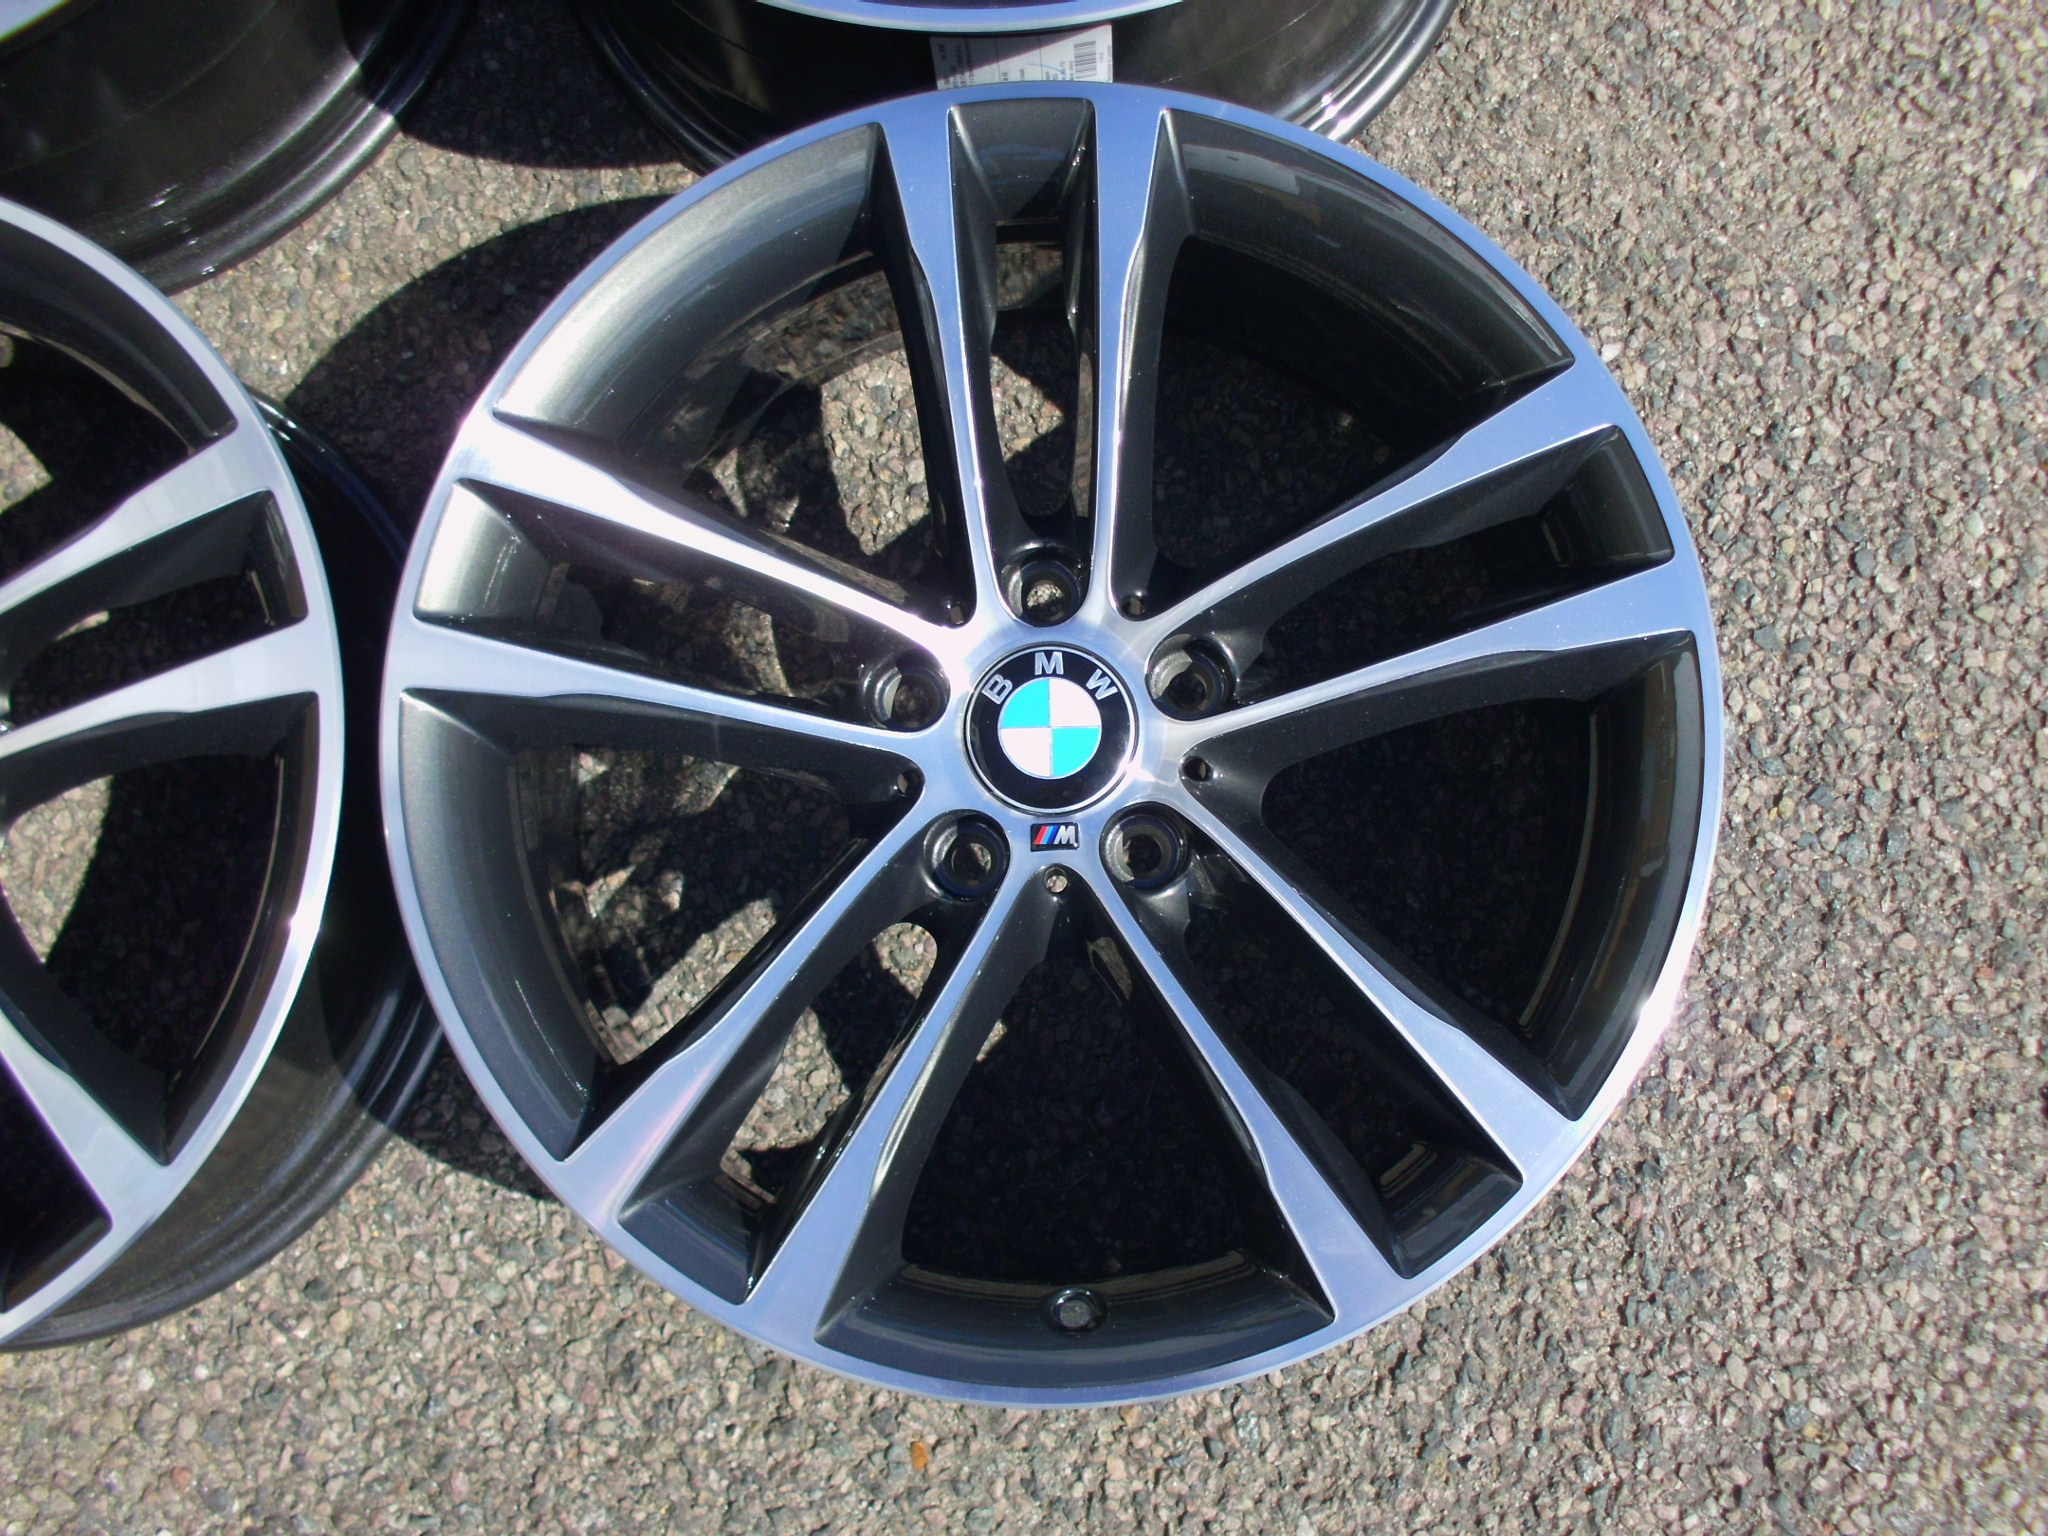 "USED 19"" GENUINE BMW STYLE 598 F34 GT M SPORT DOUBLE SPOKE ALLOY WHEELS,WIDE REAR, FULLY REFURBED"